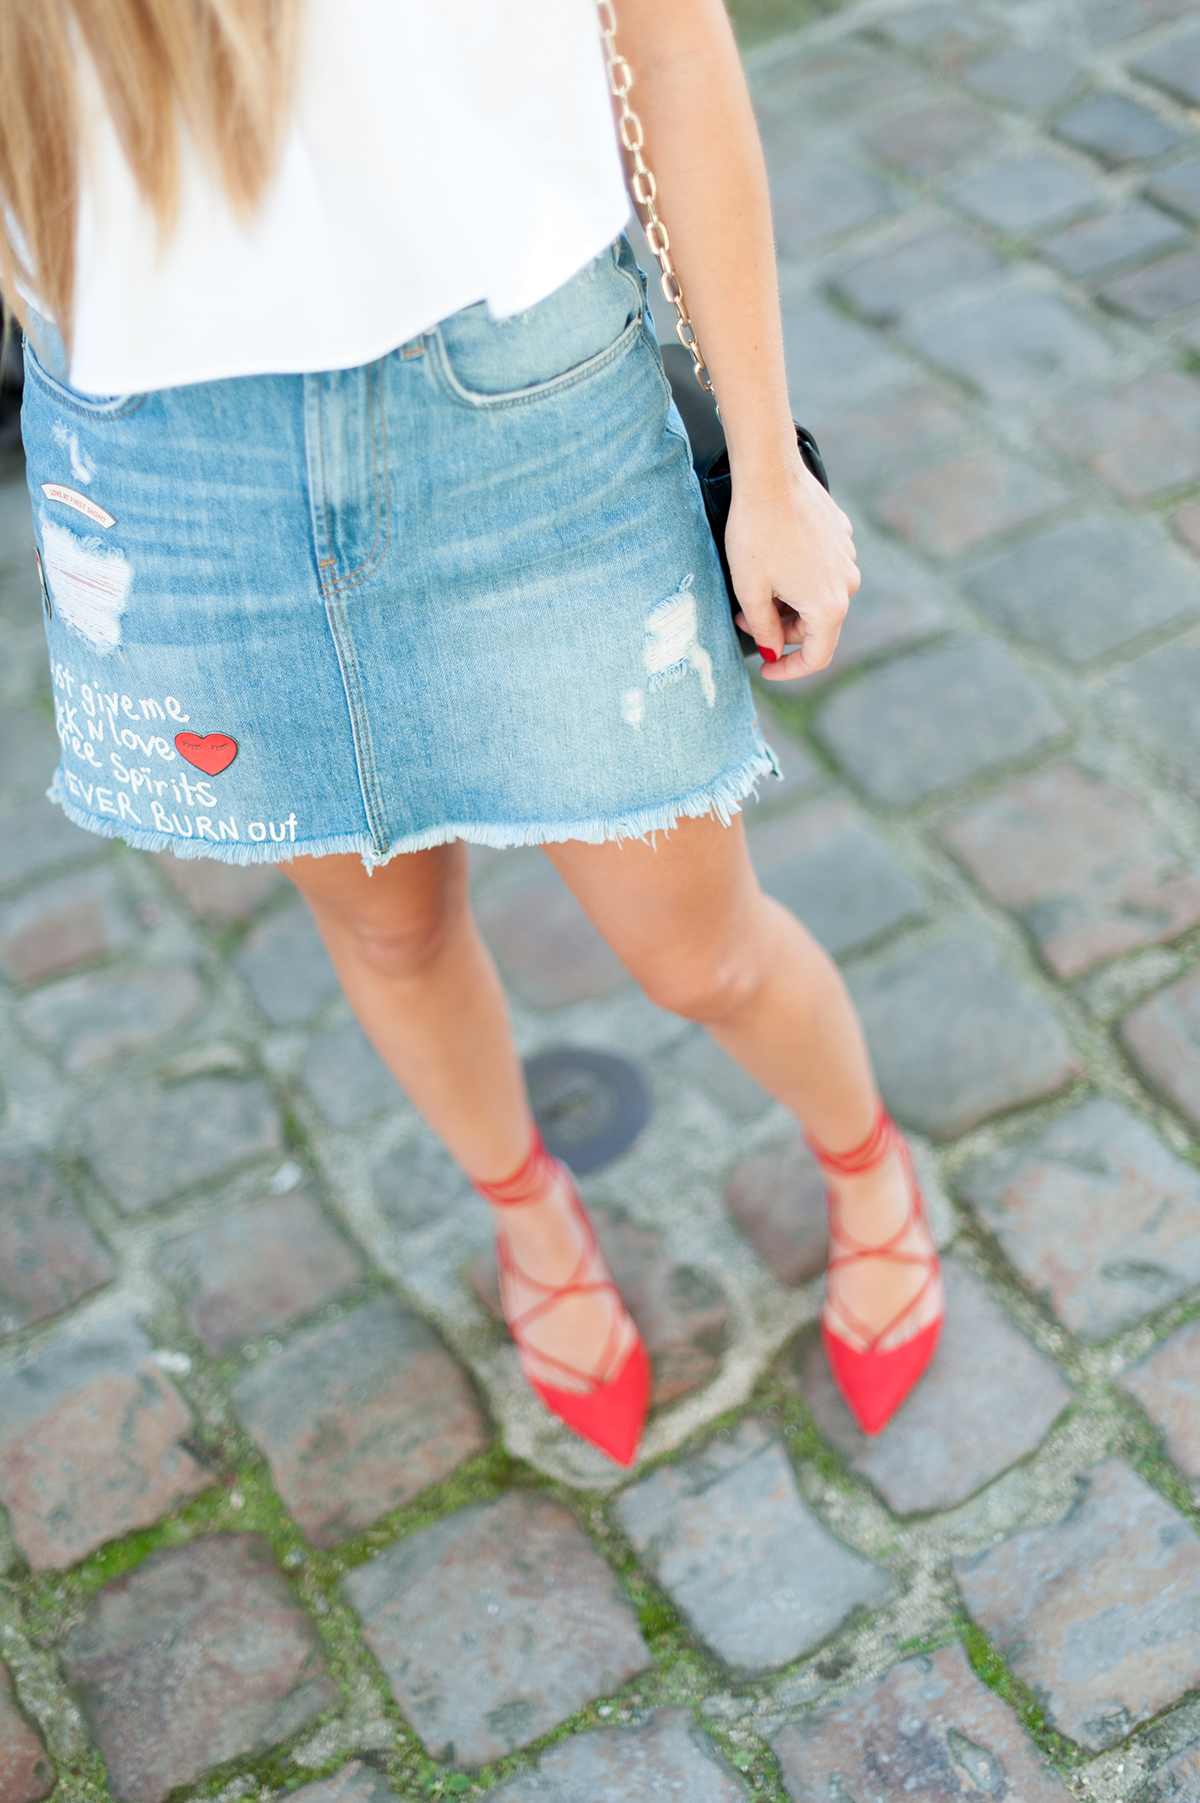 denim skirt and red shoes